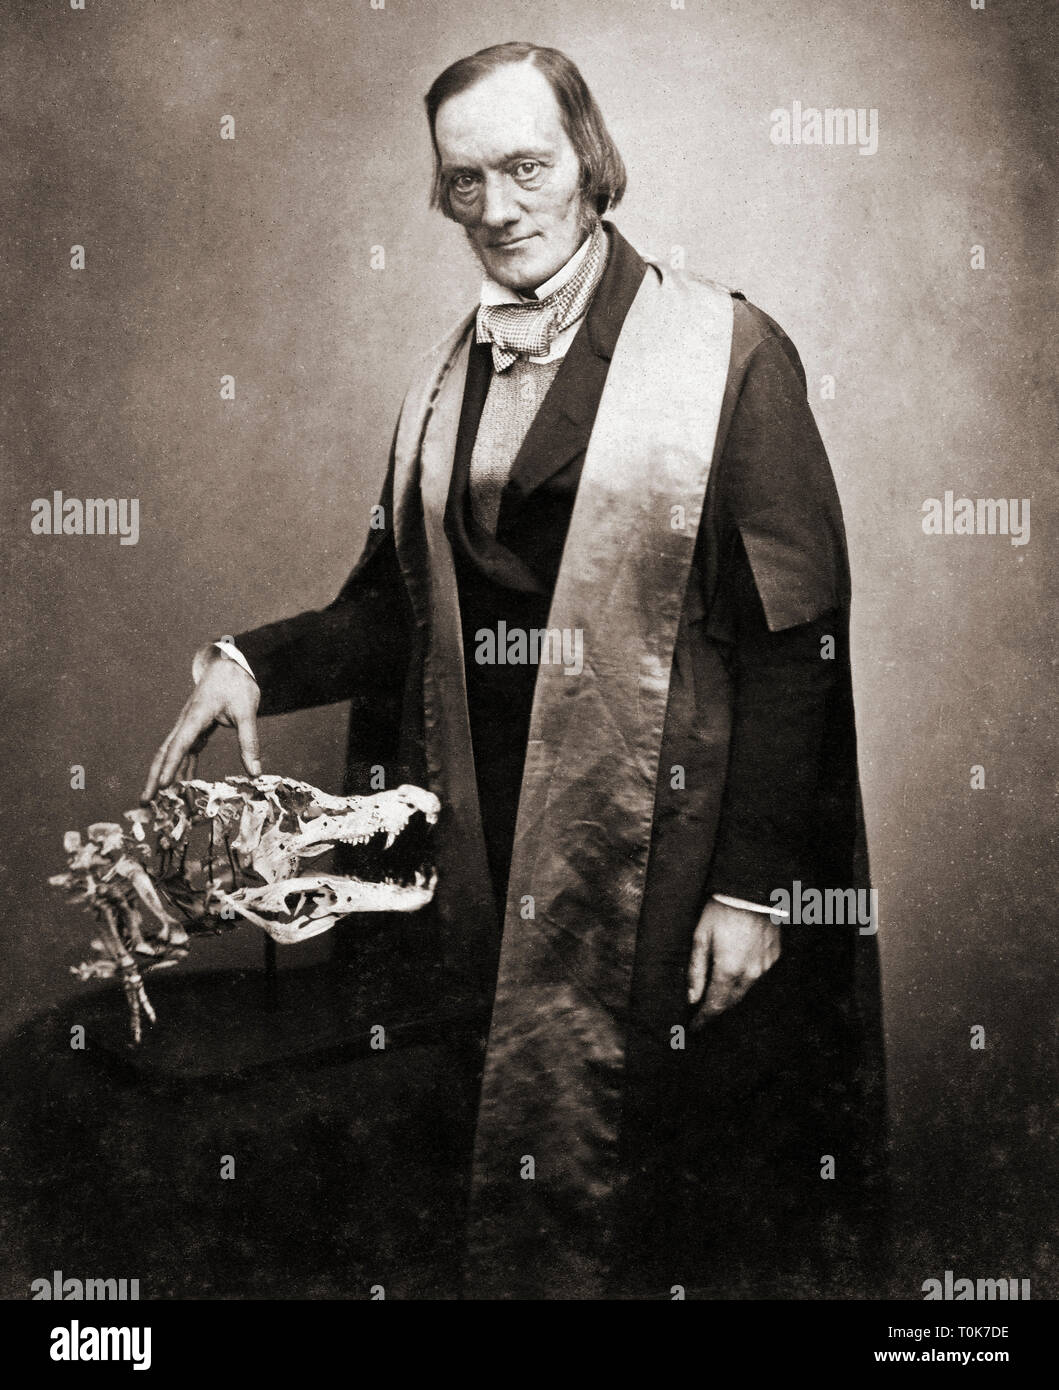 Sir Richard Owen, 1804-1892. English biologist, comparative anatomist and paleontologist.  Seen here with the skull of a crocodile. - Stock Image